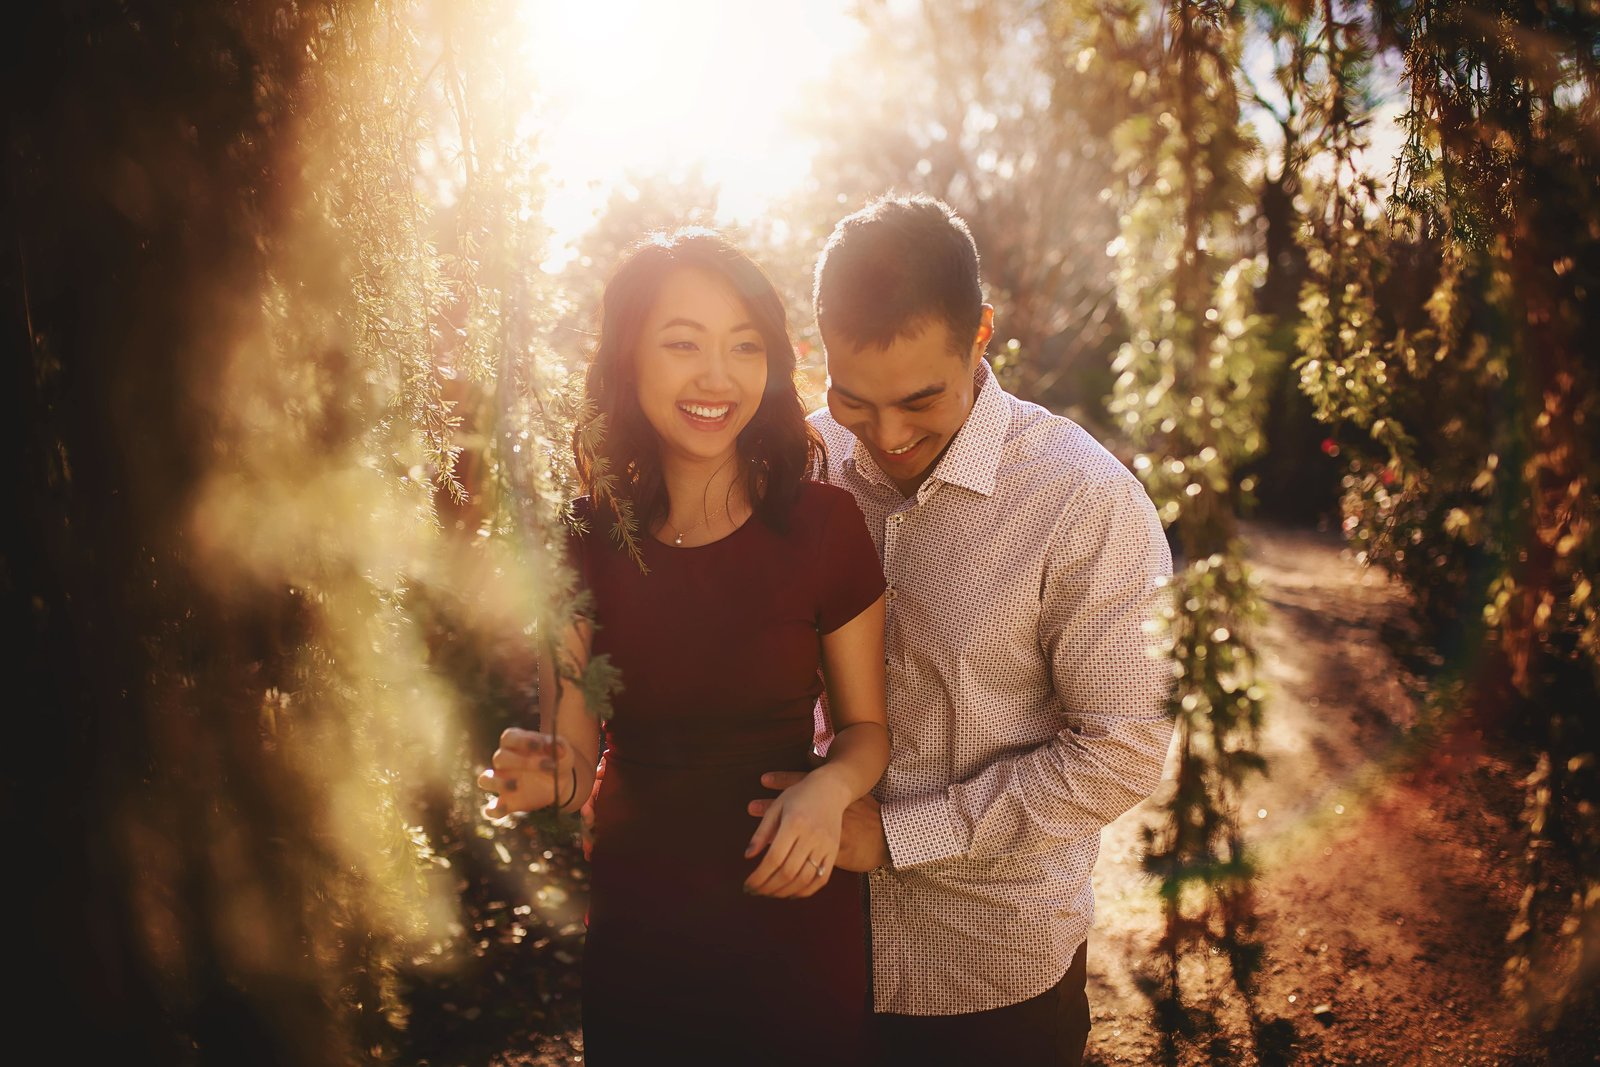 Engagement-Fine-Art-Dallas Arboretum.jpg-min